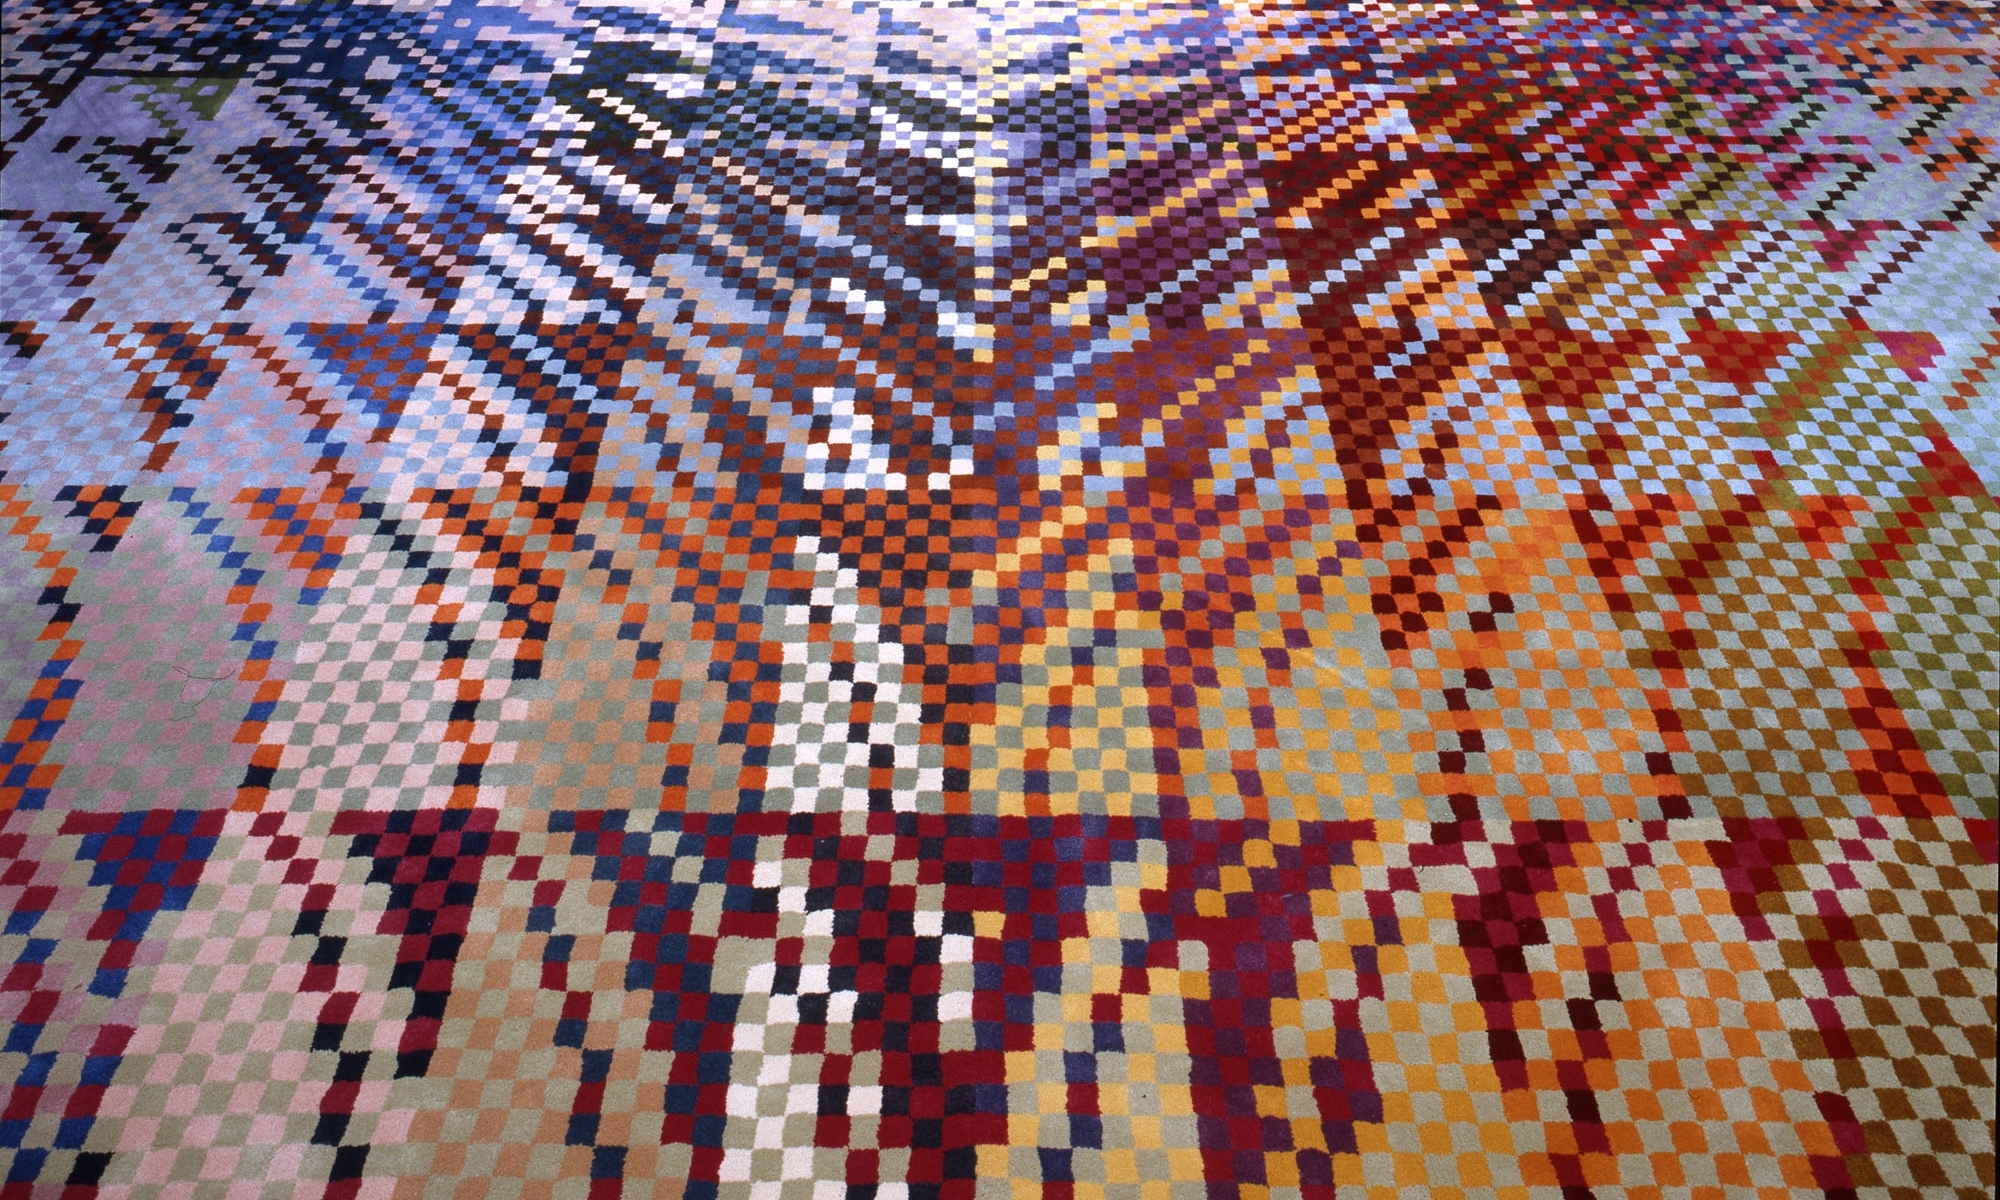 Carpet designed for the ministry of social services, detail